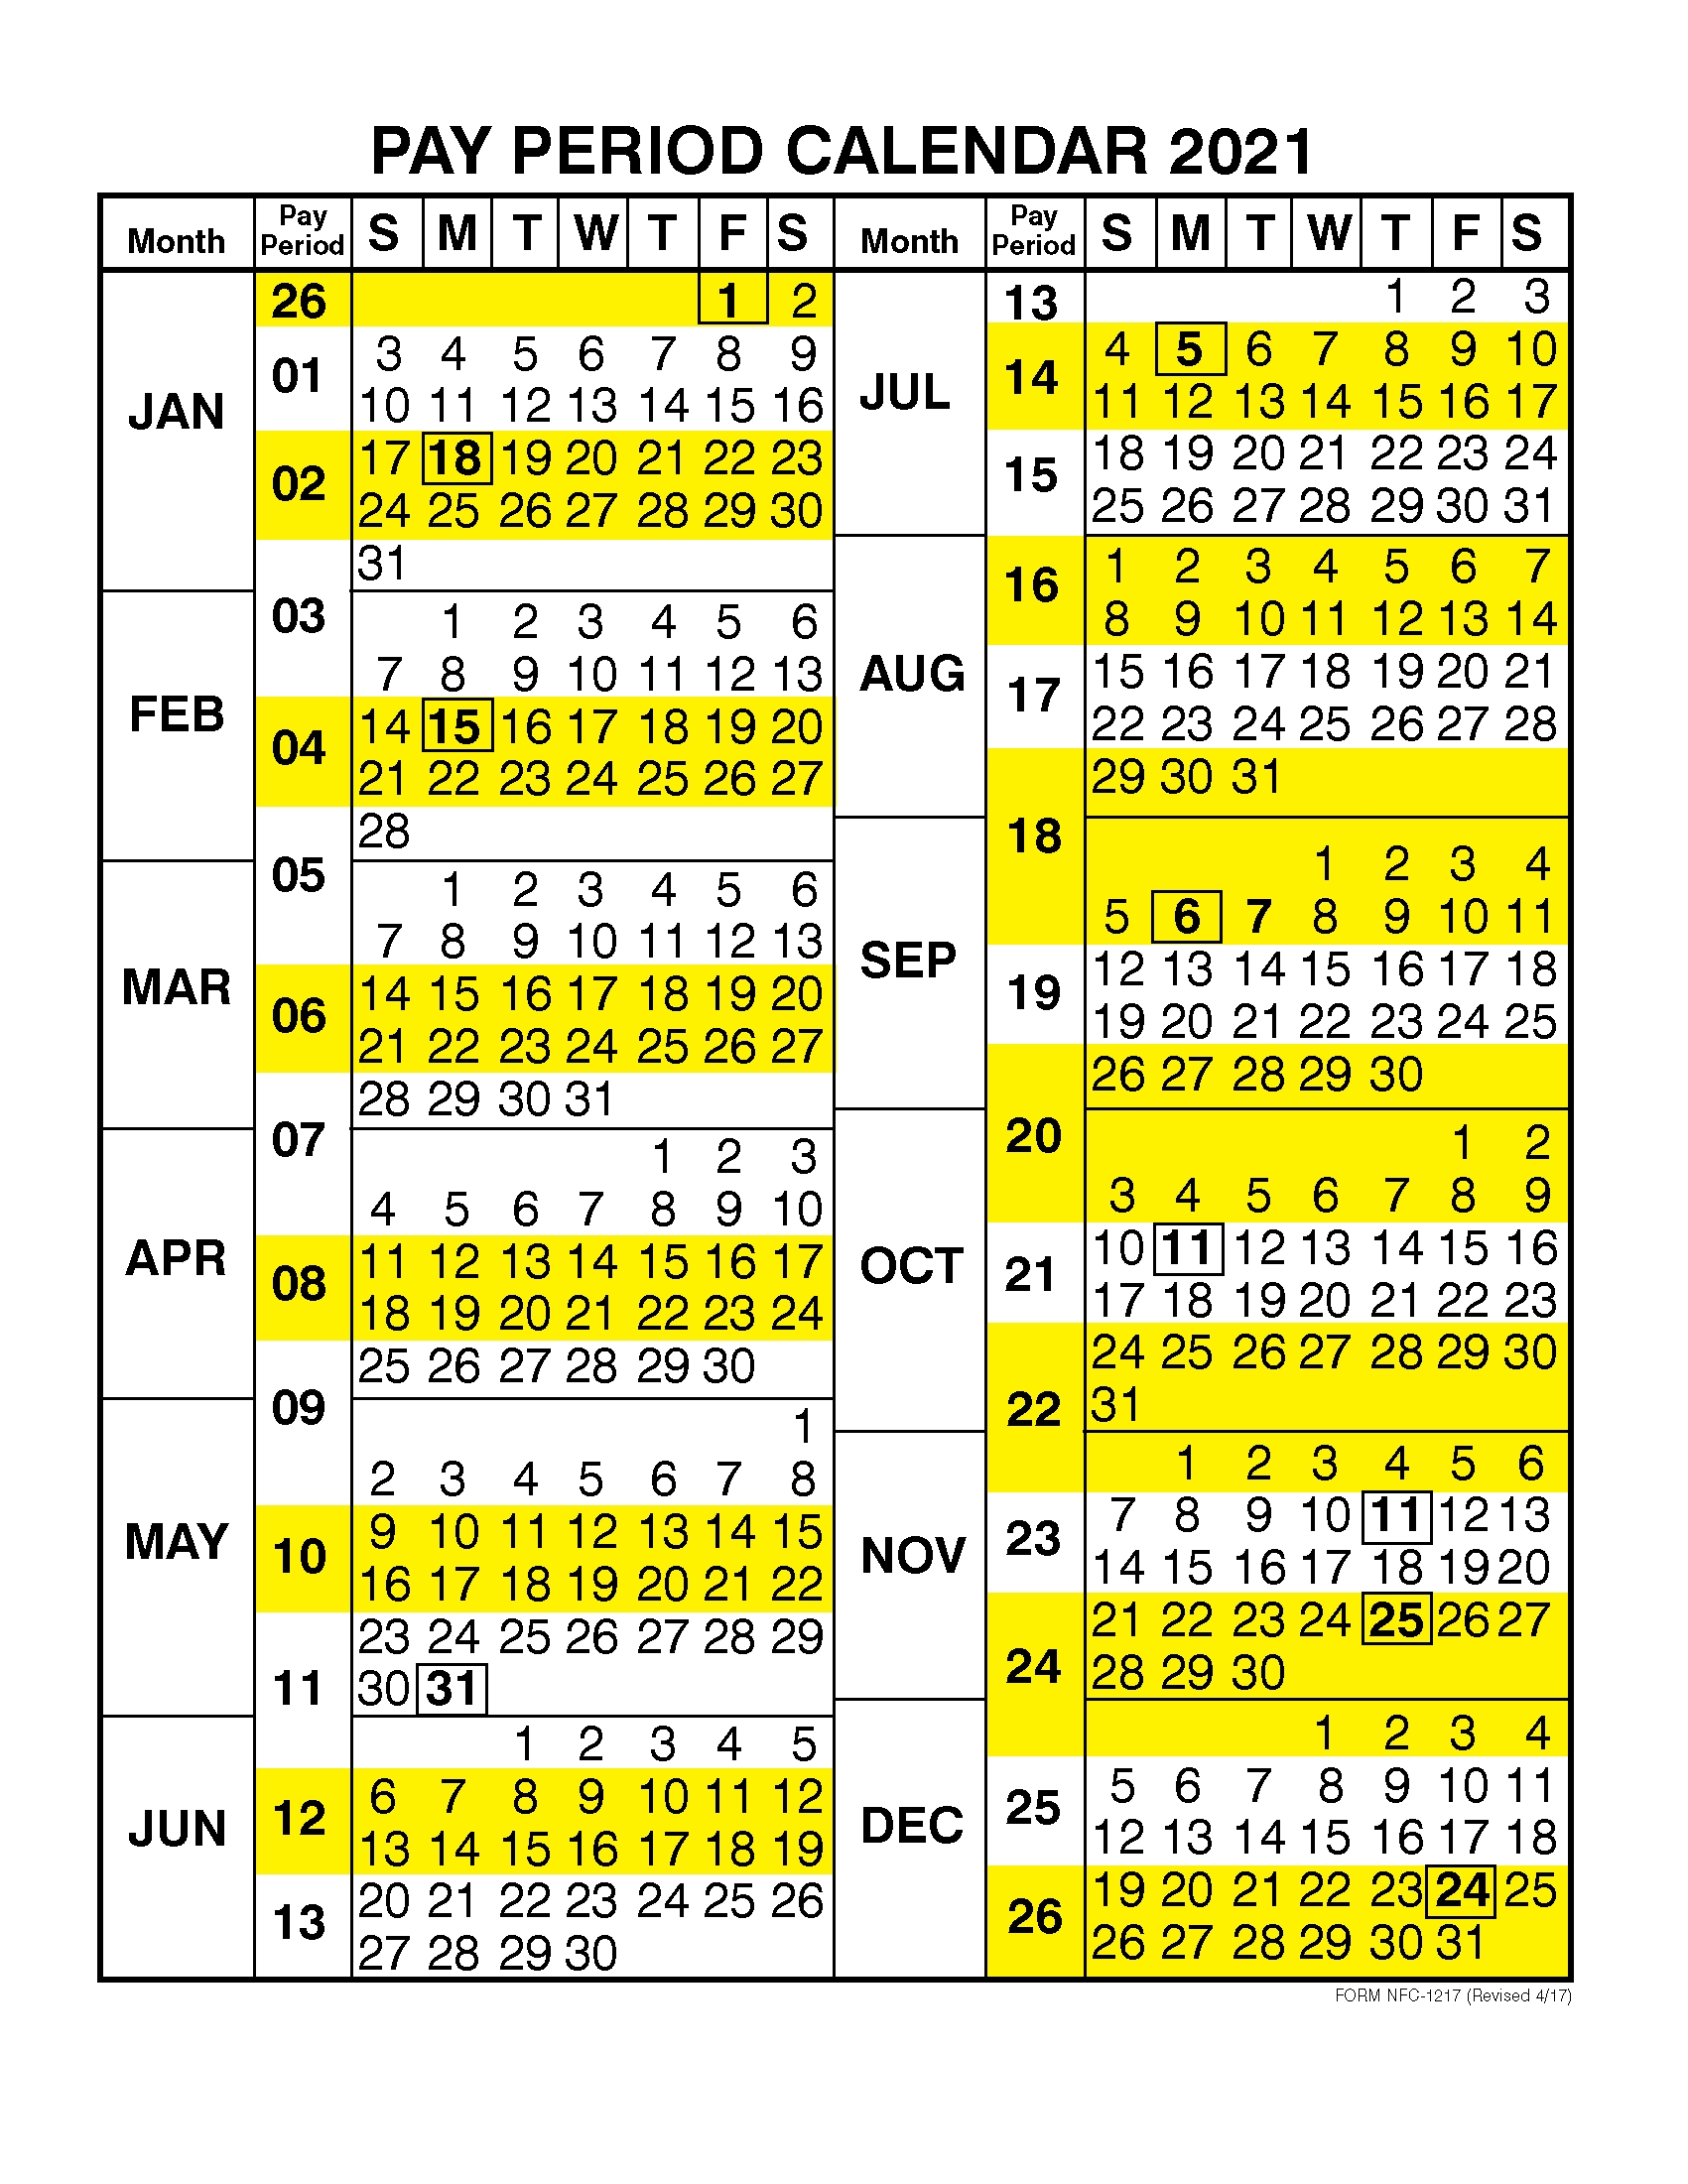 2020 Federal Calendar With Pay Period